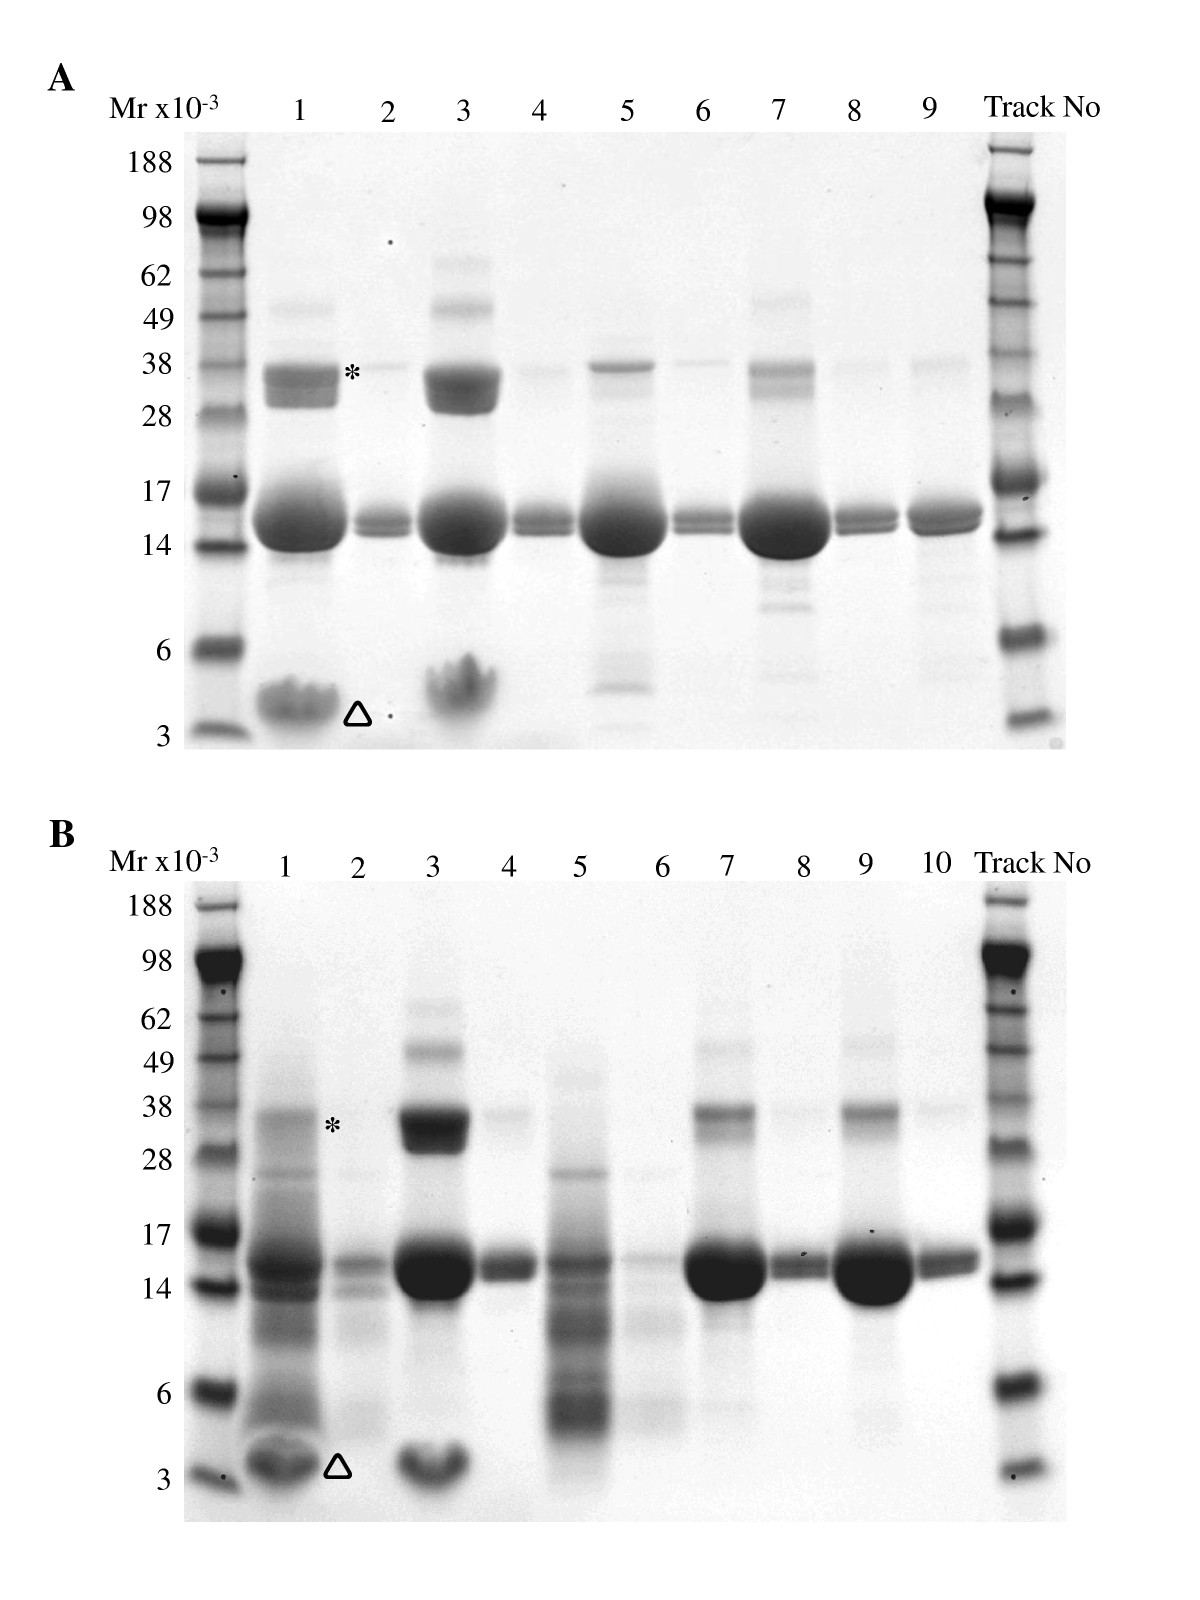 http://static-content.springer.com/image/art%3A10.1186%2F2045-7022-1-6/MediaObjects/13601_2011_Article_261_Fig1_HTML.jpg